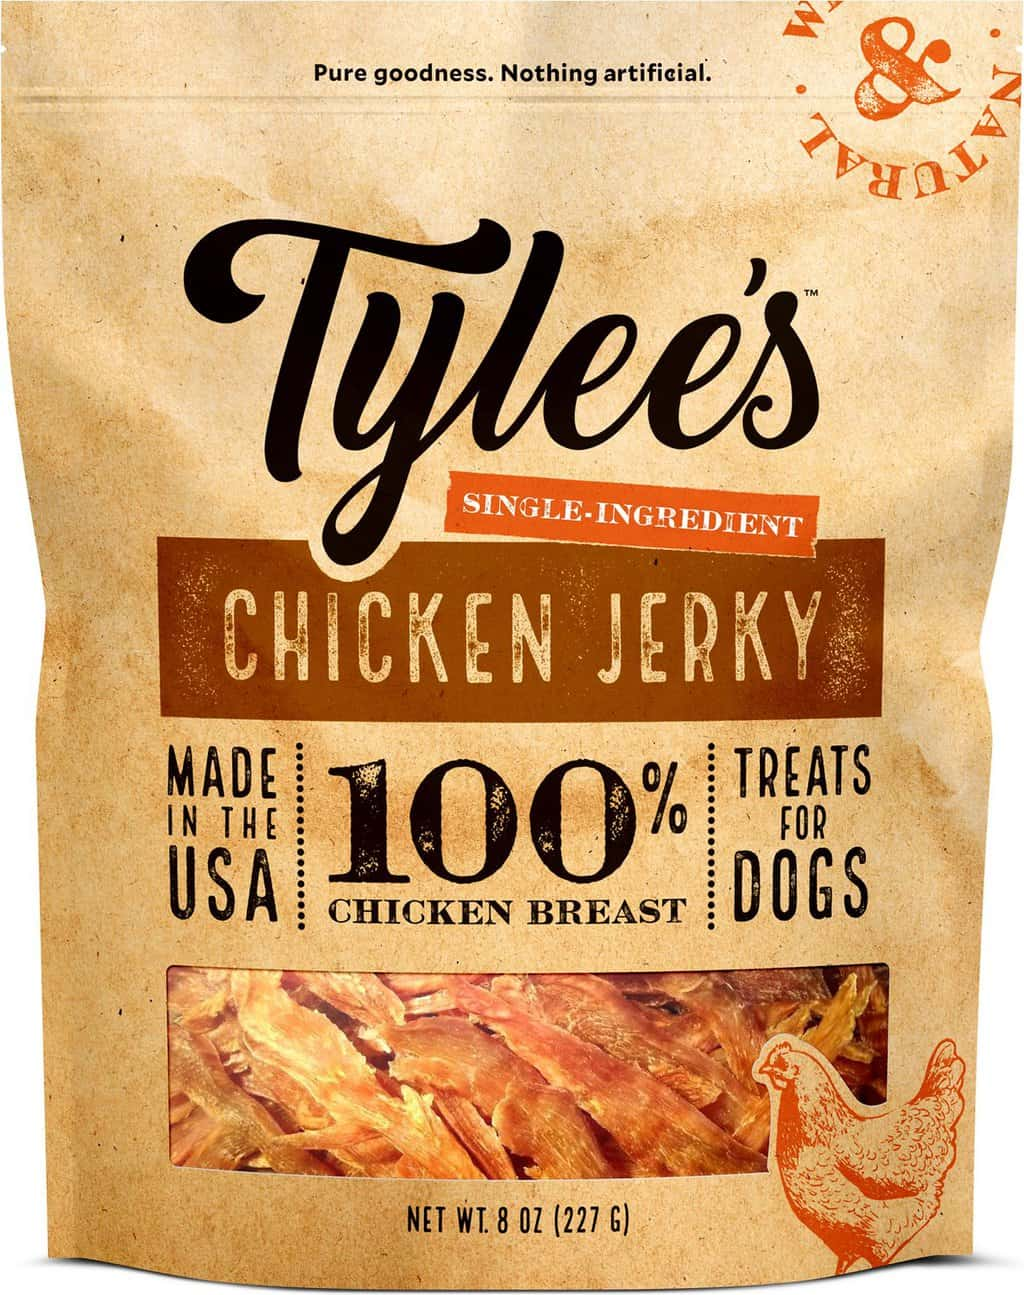 Tylee's Dog Food: 2020 Reviews, Recalls & Coupons 1